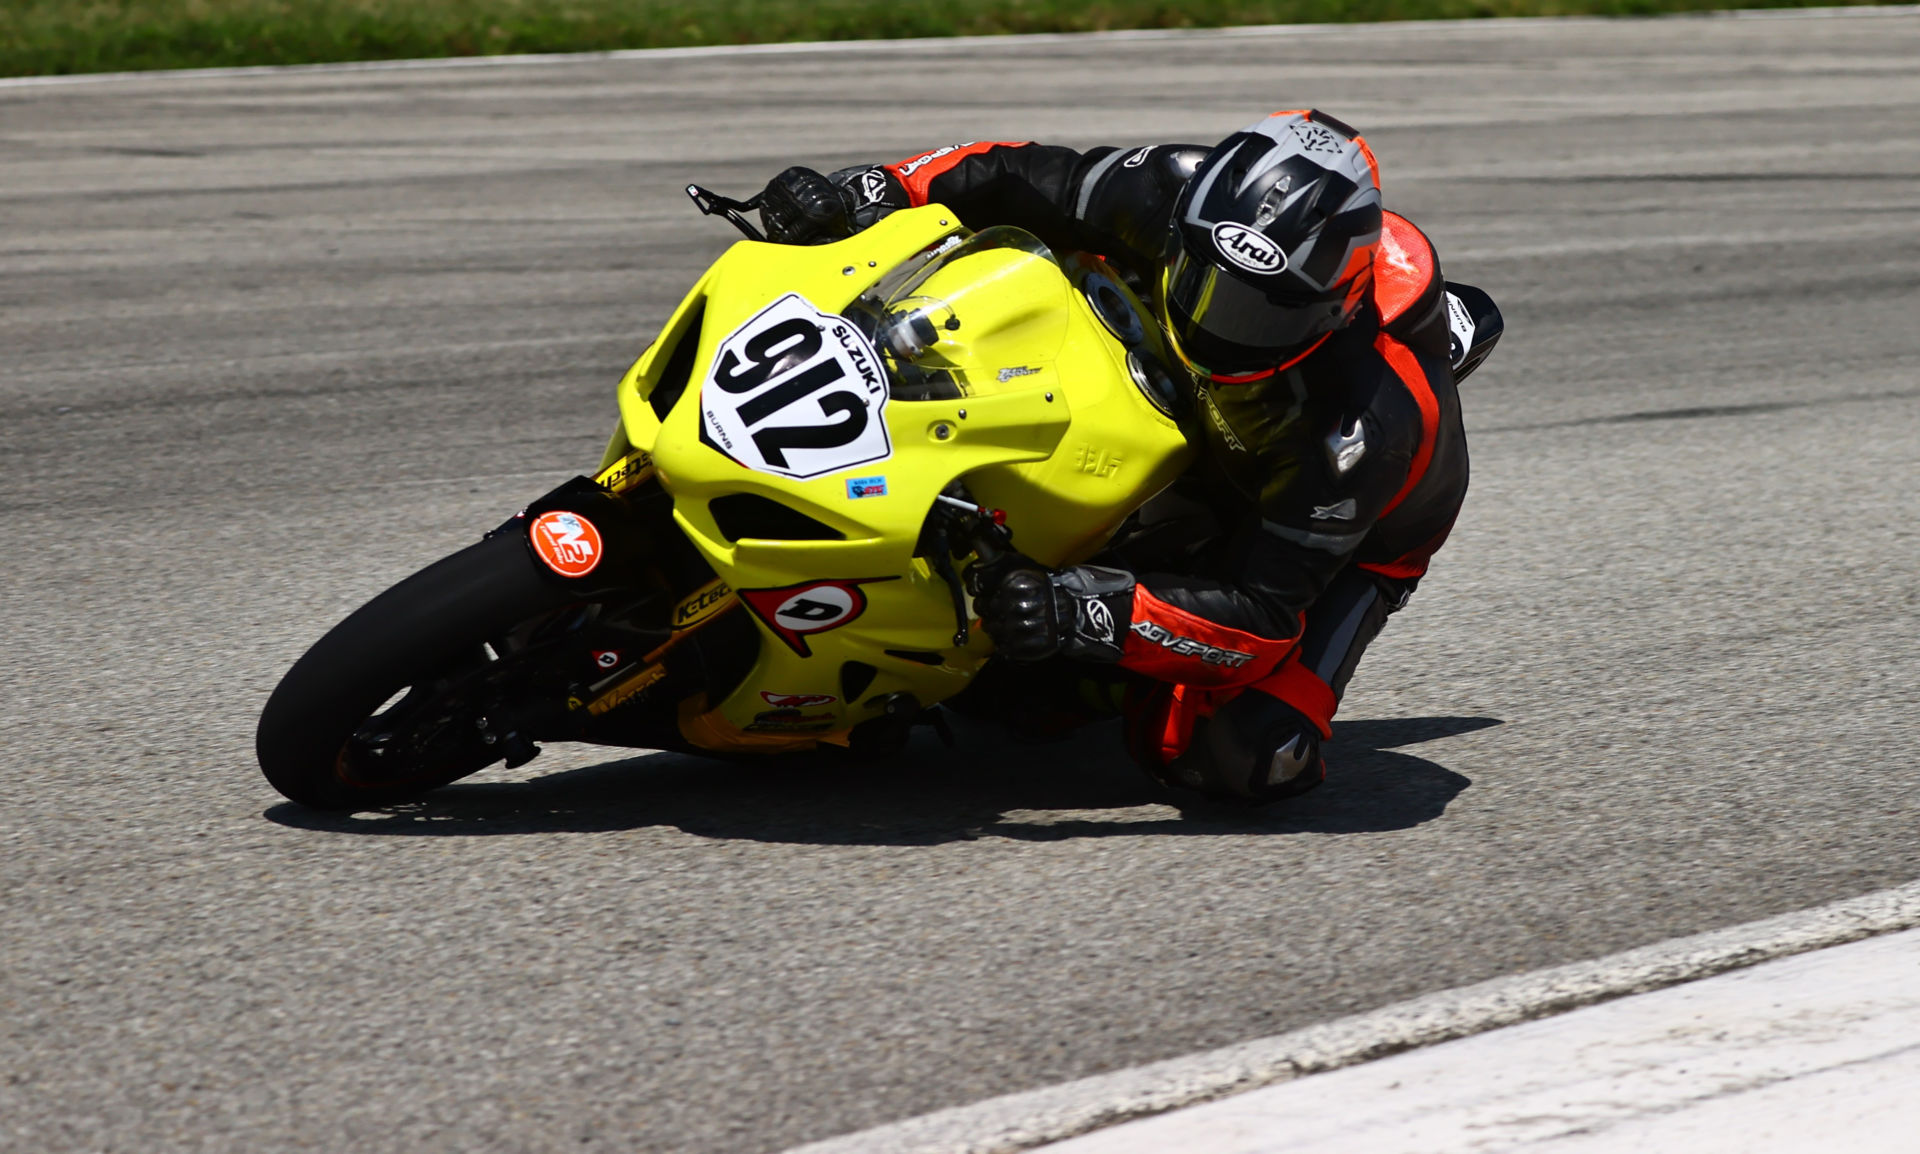 Dustin Dominguez (912) on the Twisted Speed Racing Suzuki GSX-R1000. Photo by Photos by Marty, LLC, courtesy Twisted Speed Racing.